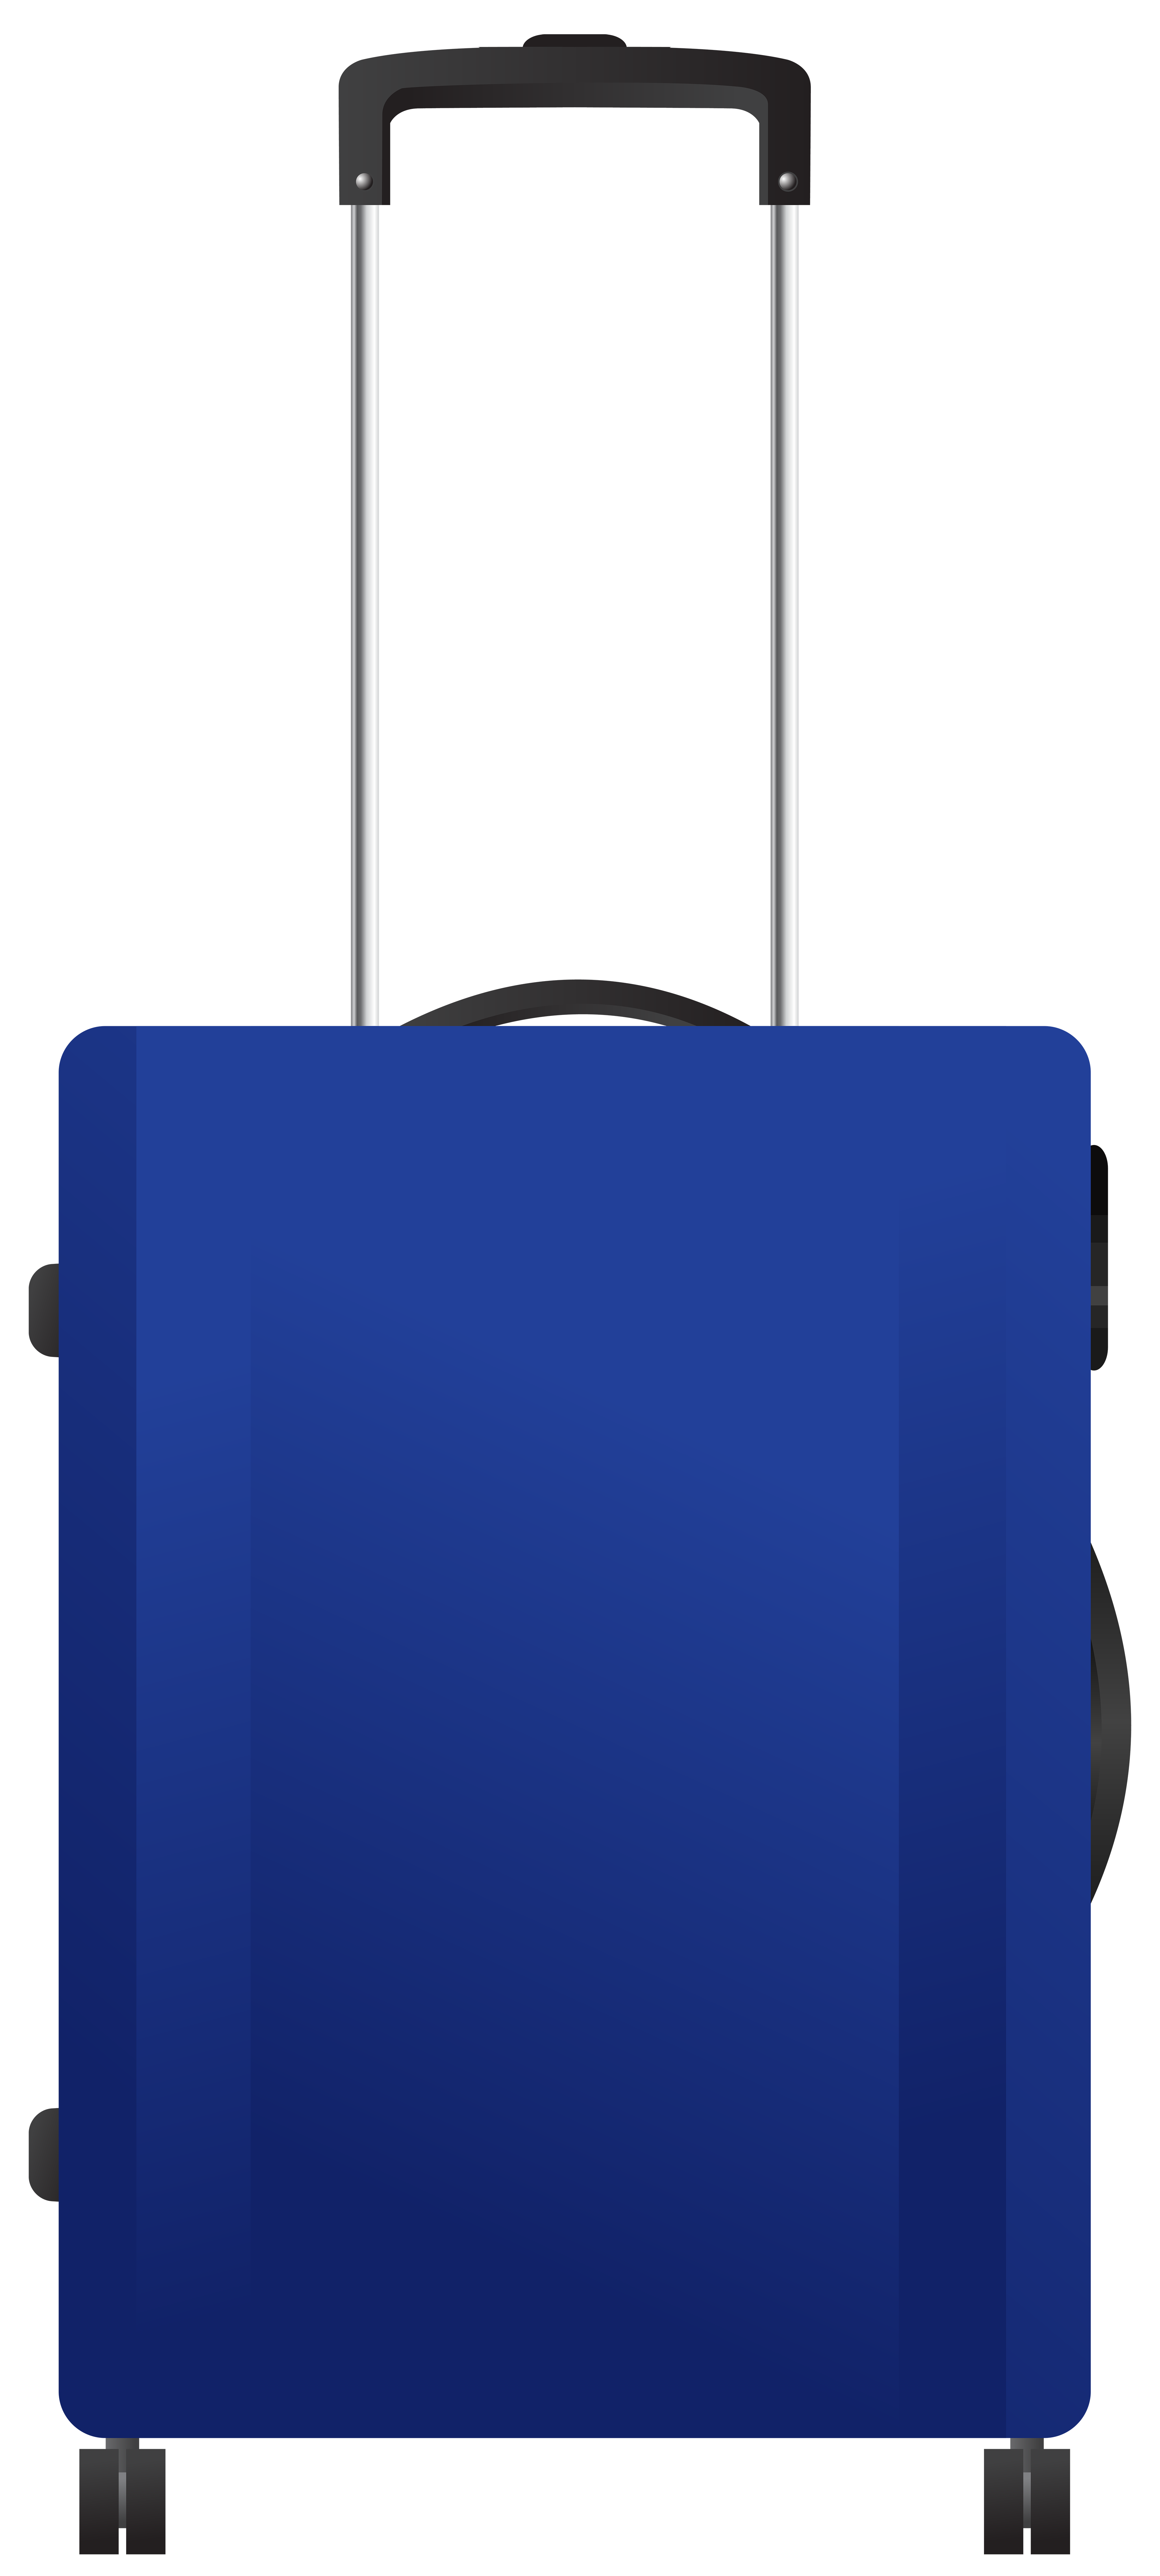 Blue trolley png transparent. Luggage clipart travel bag